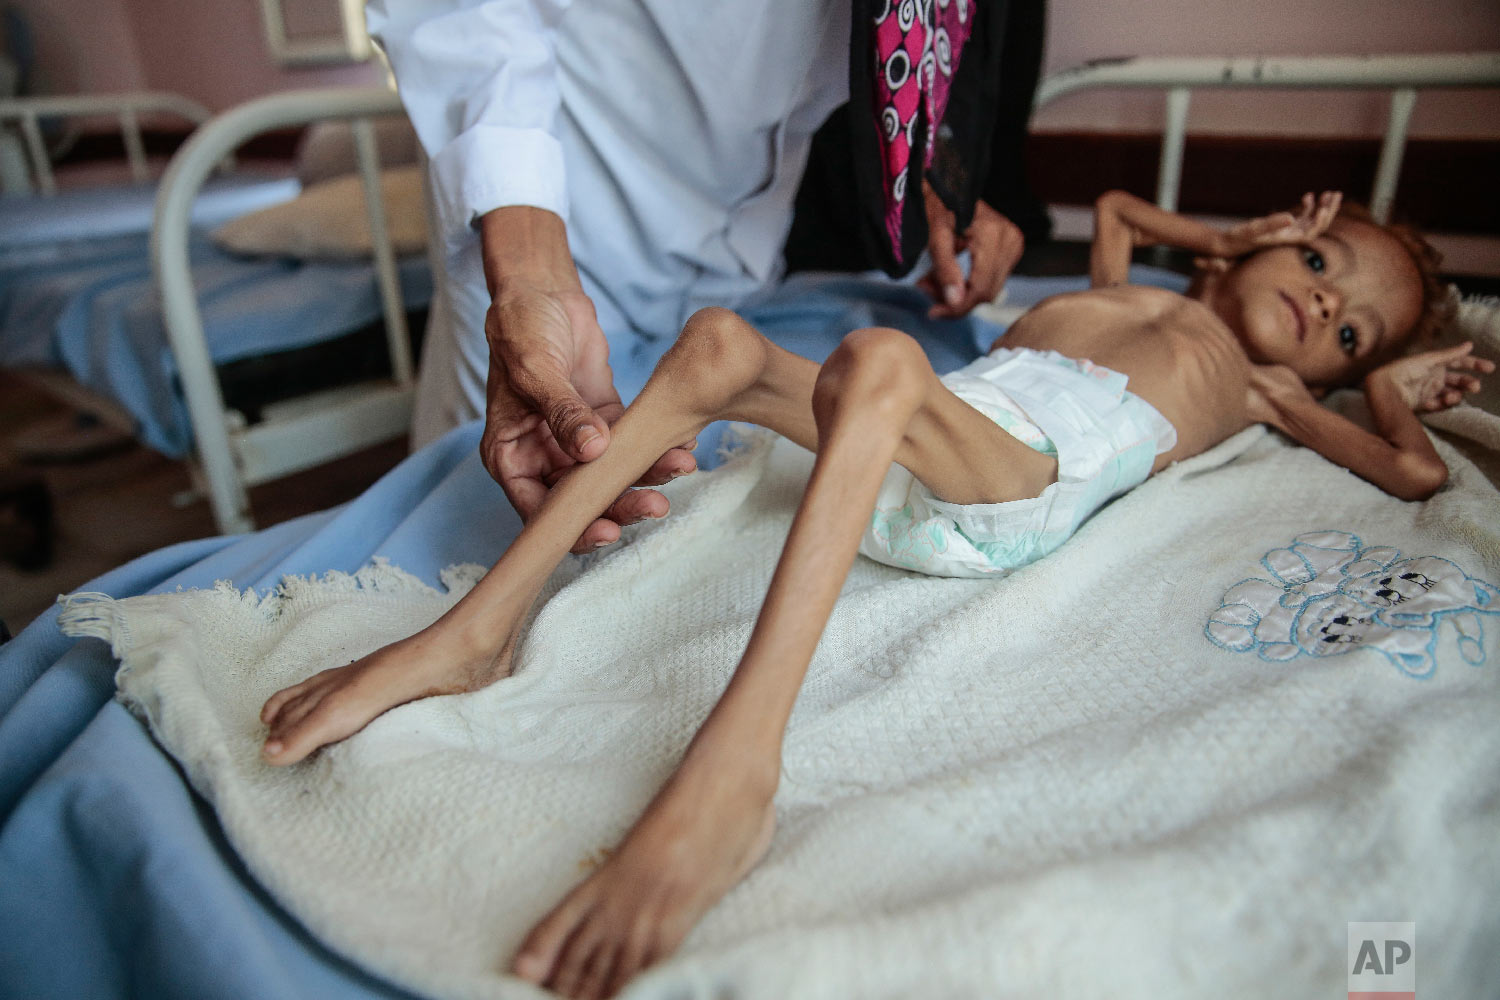 A severely malnourished boy rests on a hospital bed at the Aslam Health Center, Hajjah, Yemen. (AP Photo/Hani Mohammed)